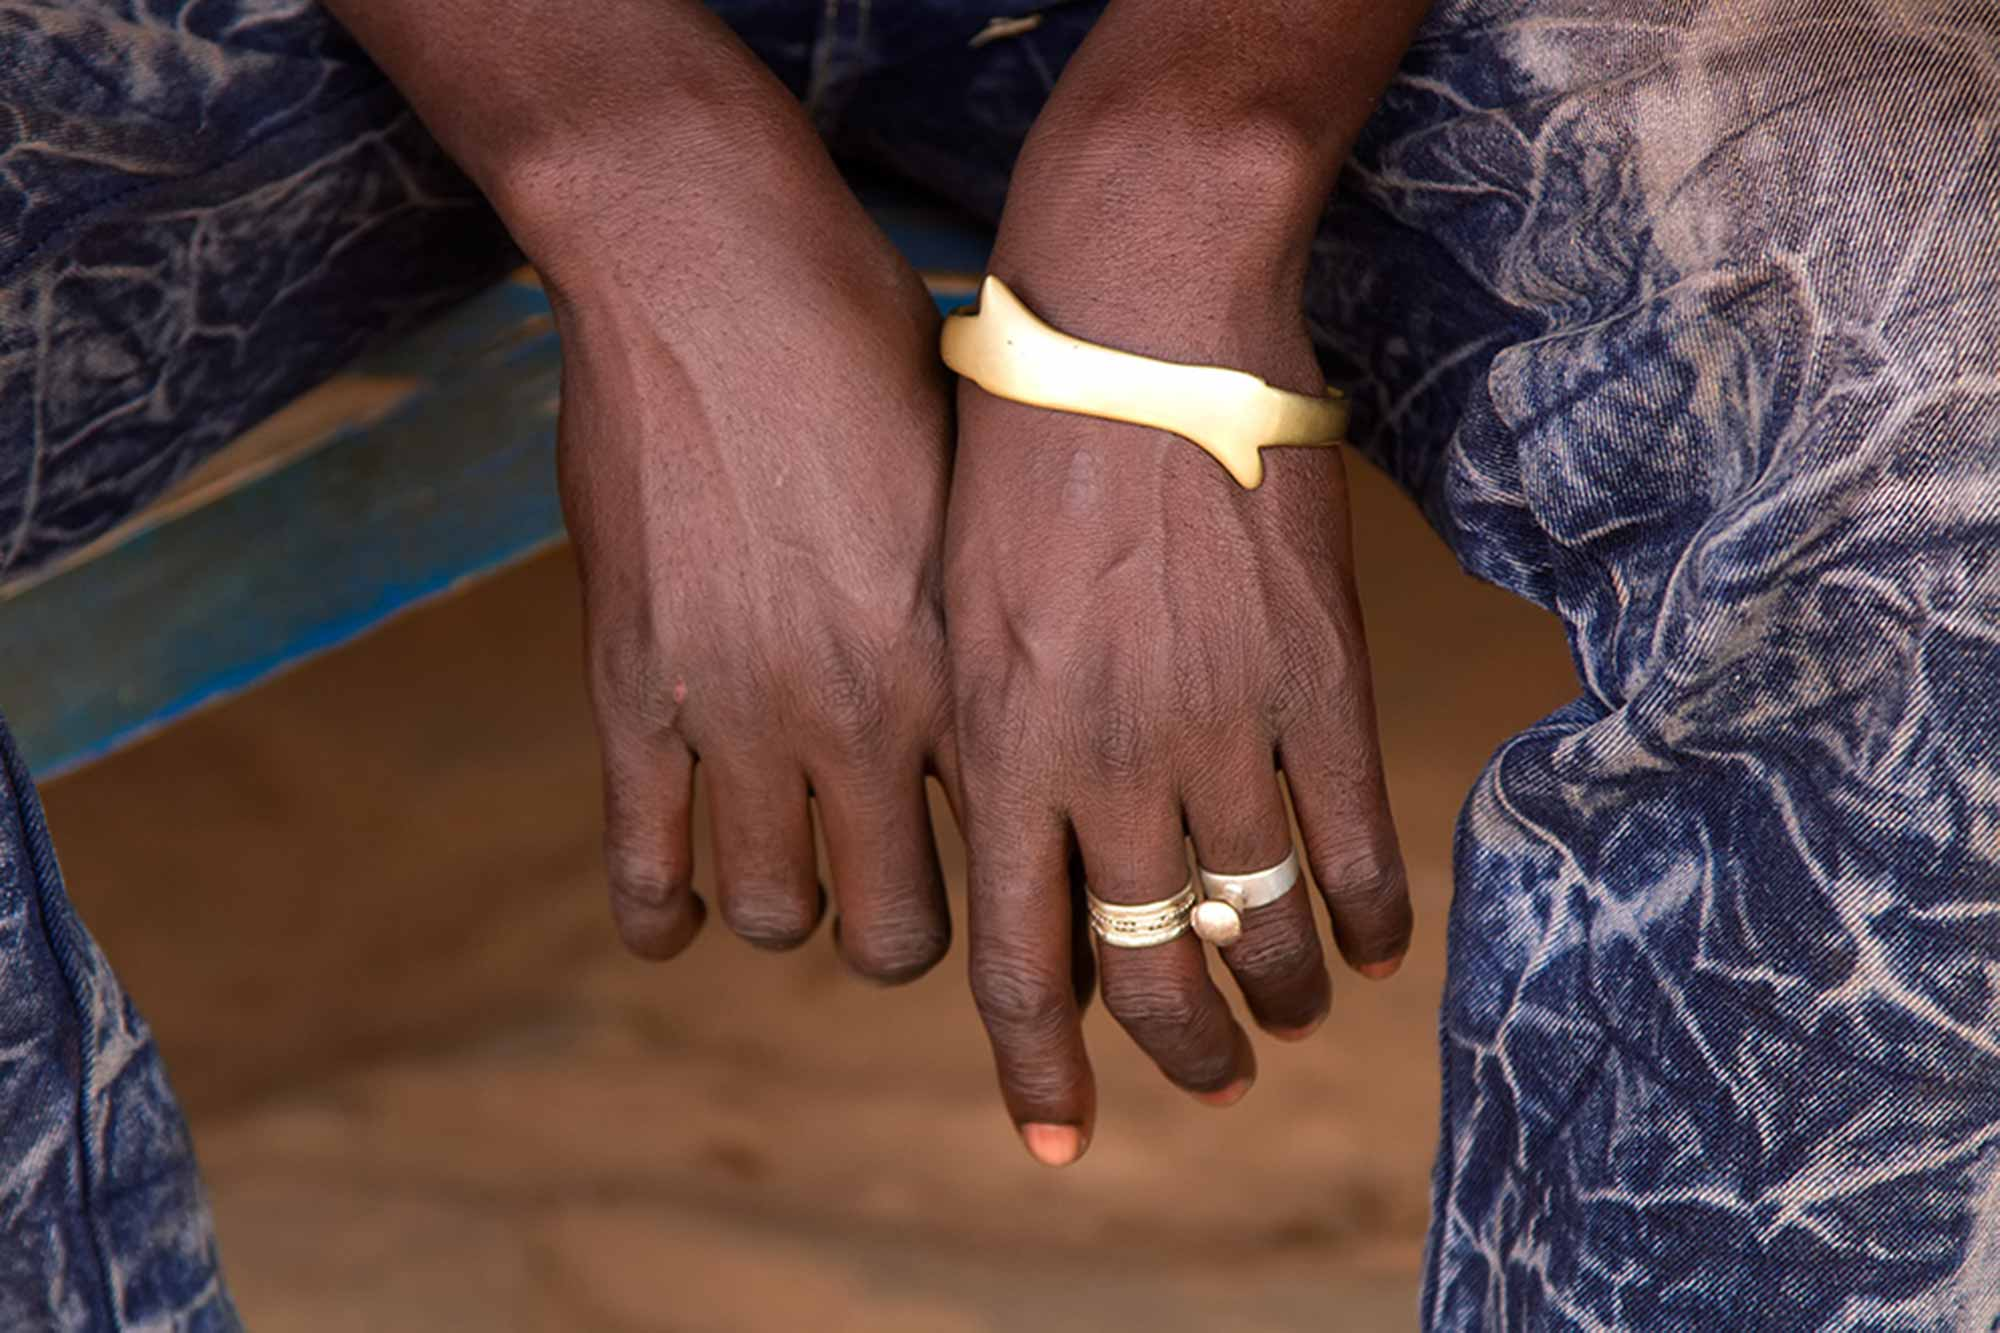 Hands of a man in Ouagadougou, Burkina Faso. © Ulli Maier & Nisa Maier